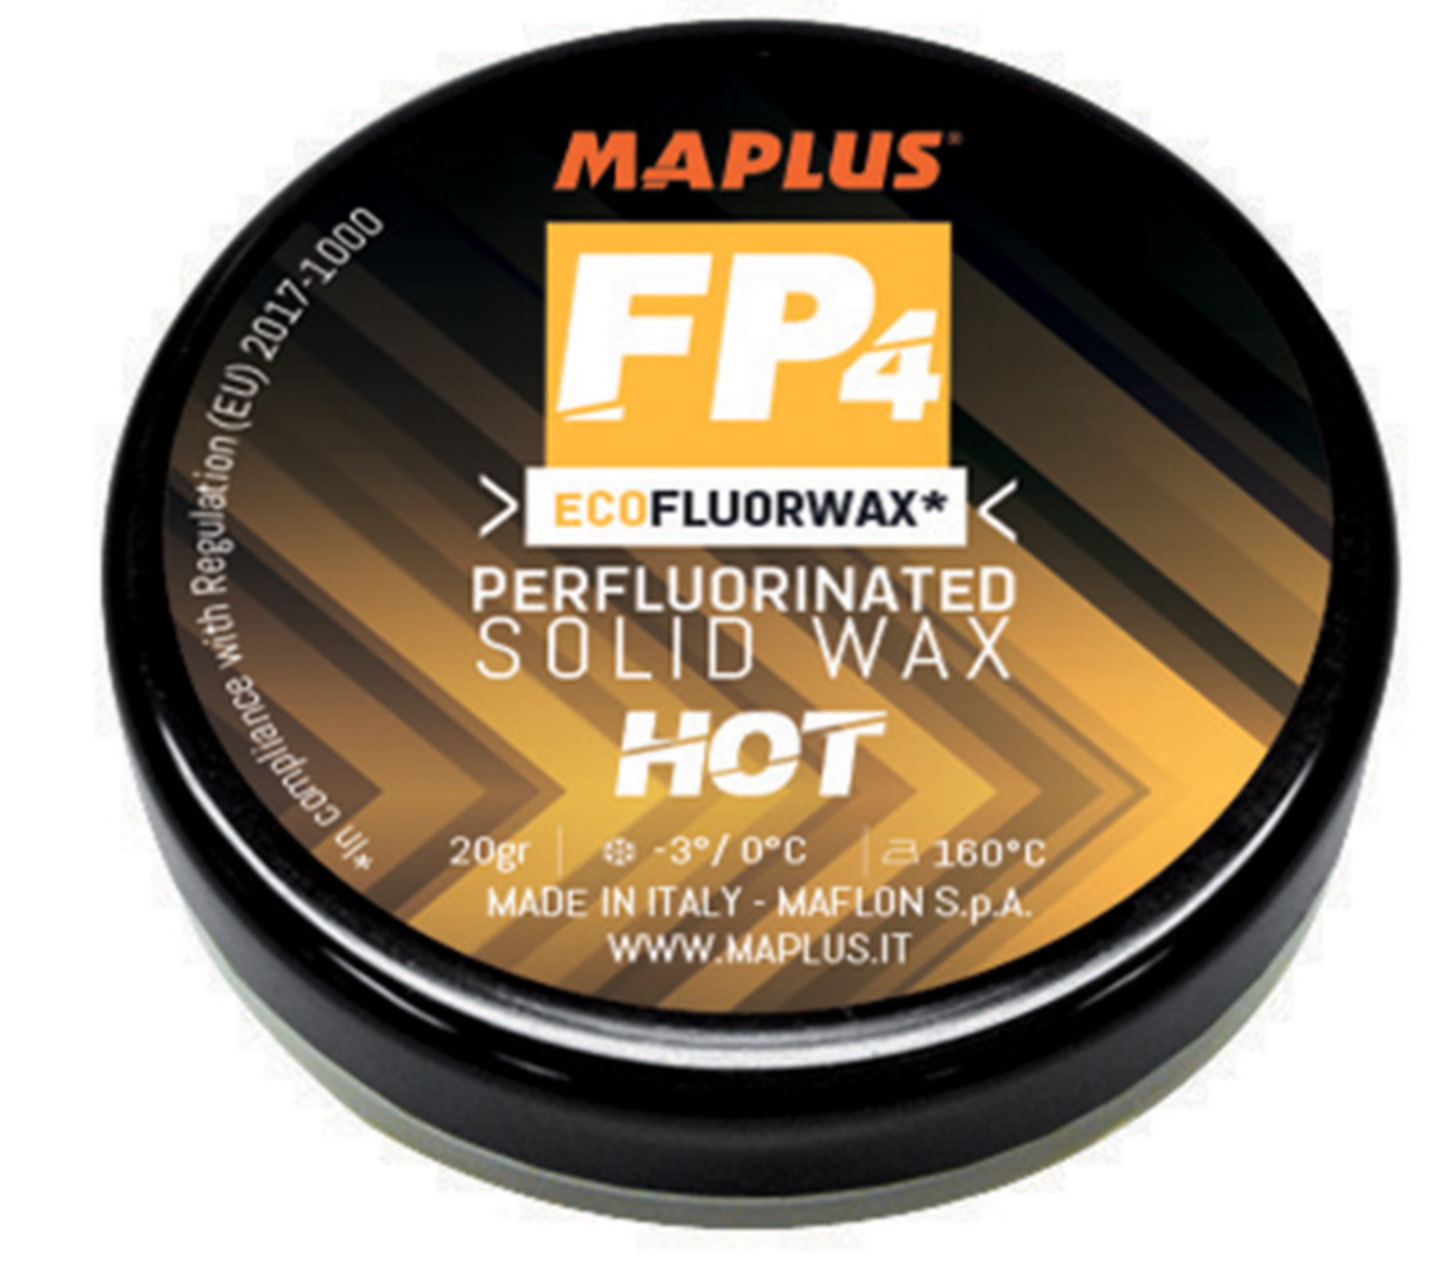 MAPLUS FP4 HOT Block